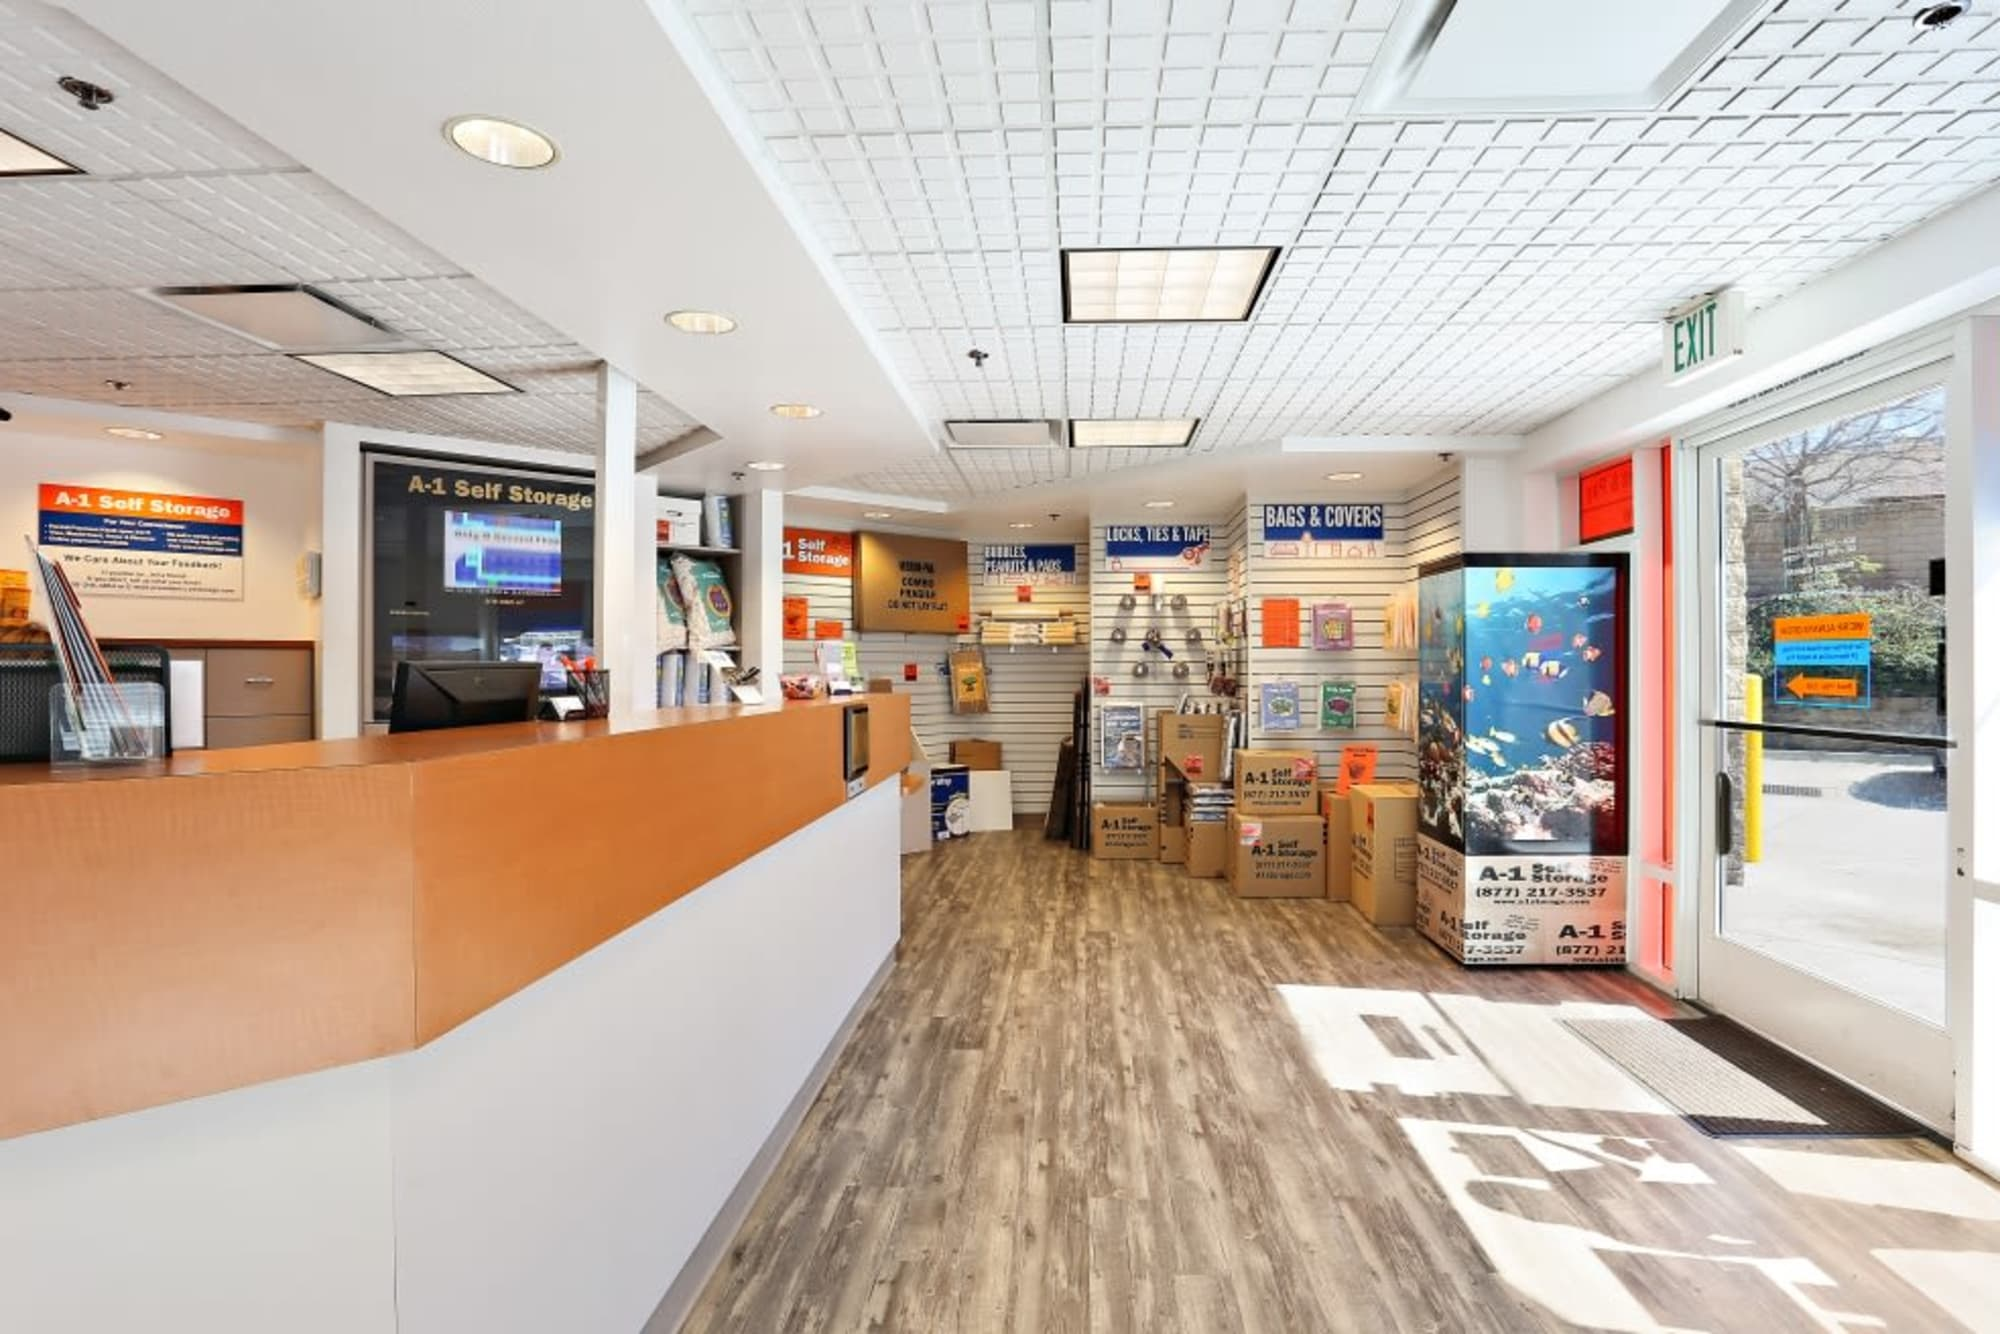 The leasing office at A-1 Self Storage in La Mesa, California